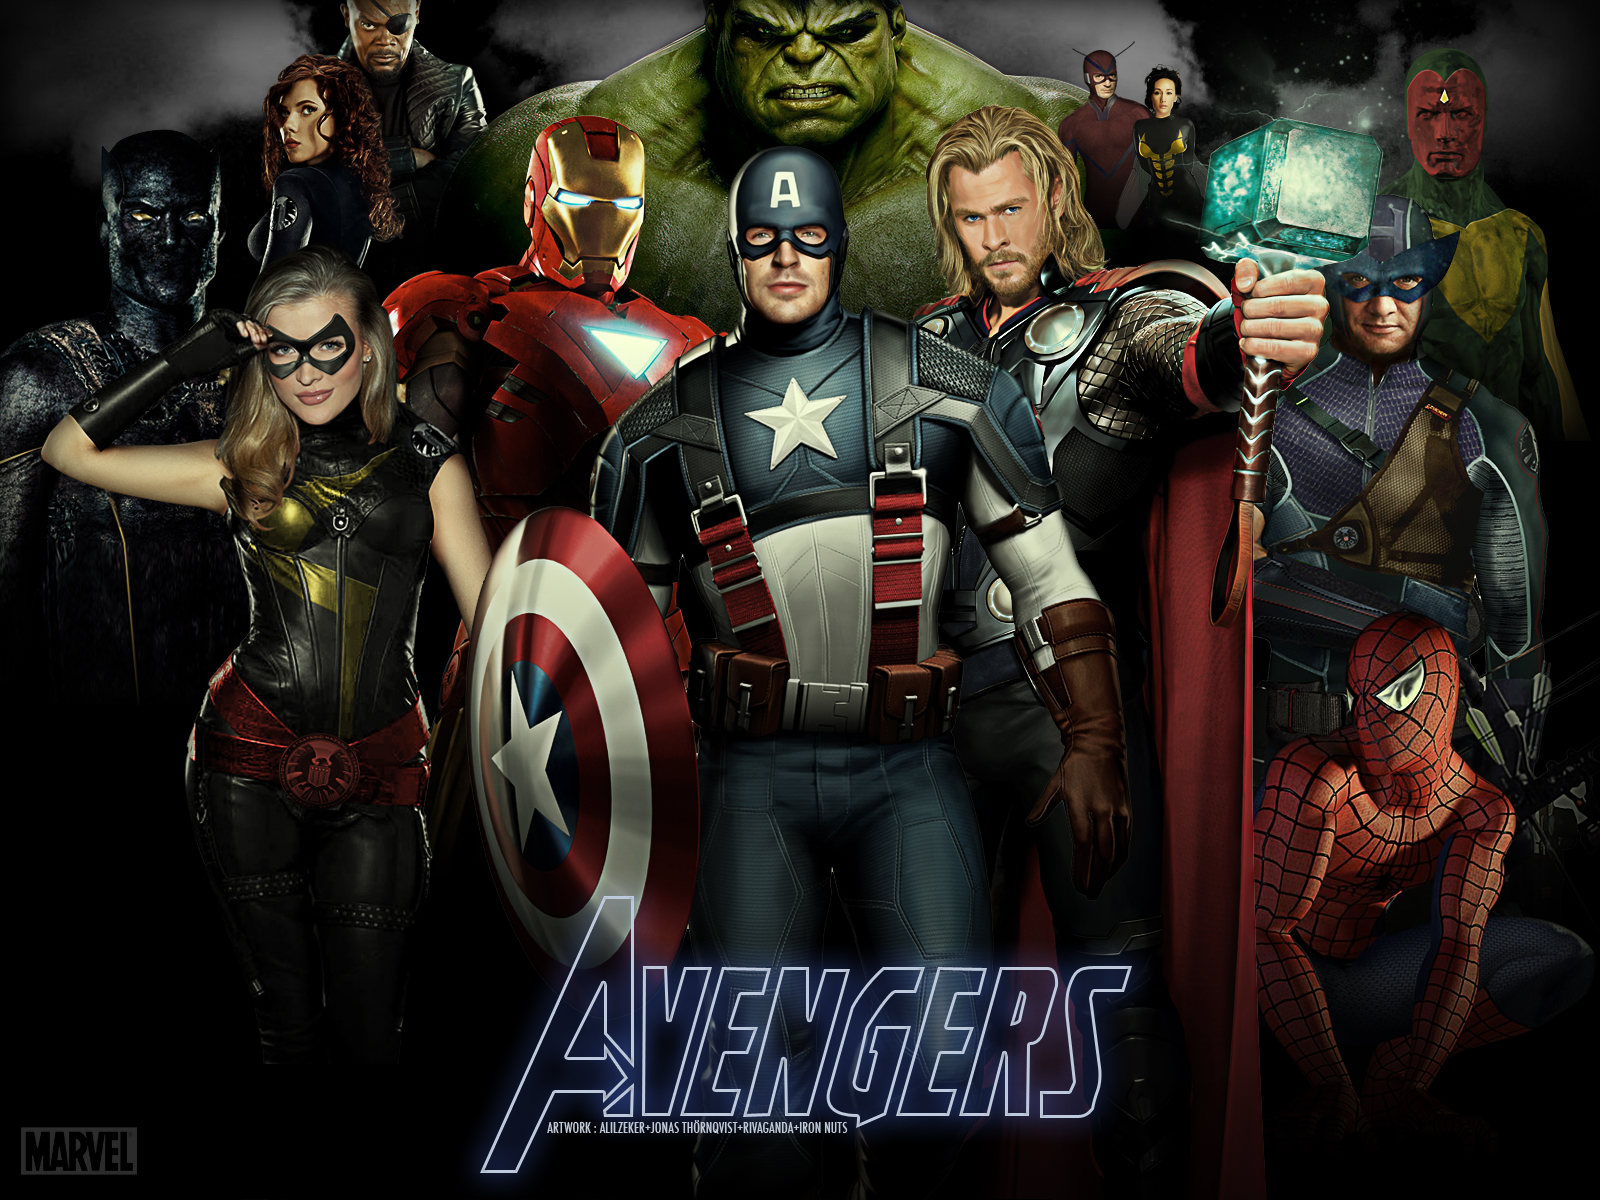 Wallpapers - Os Vingadores (The Avengers)